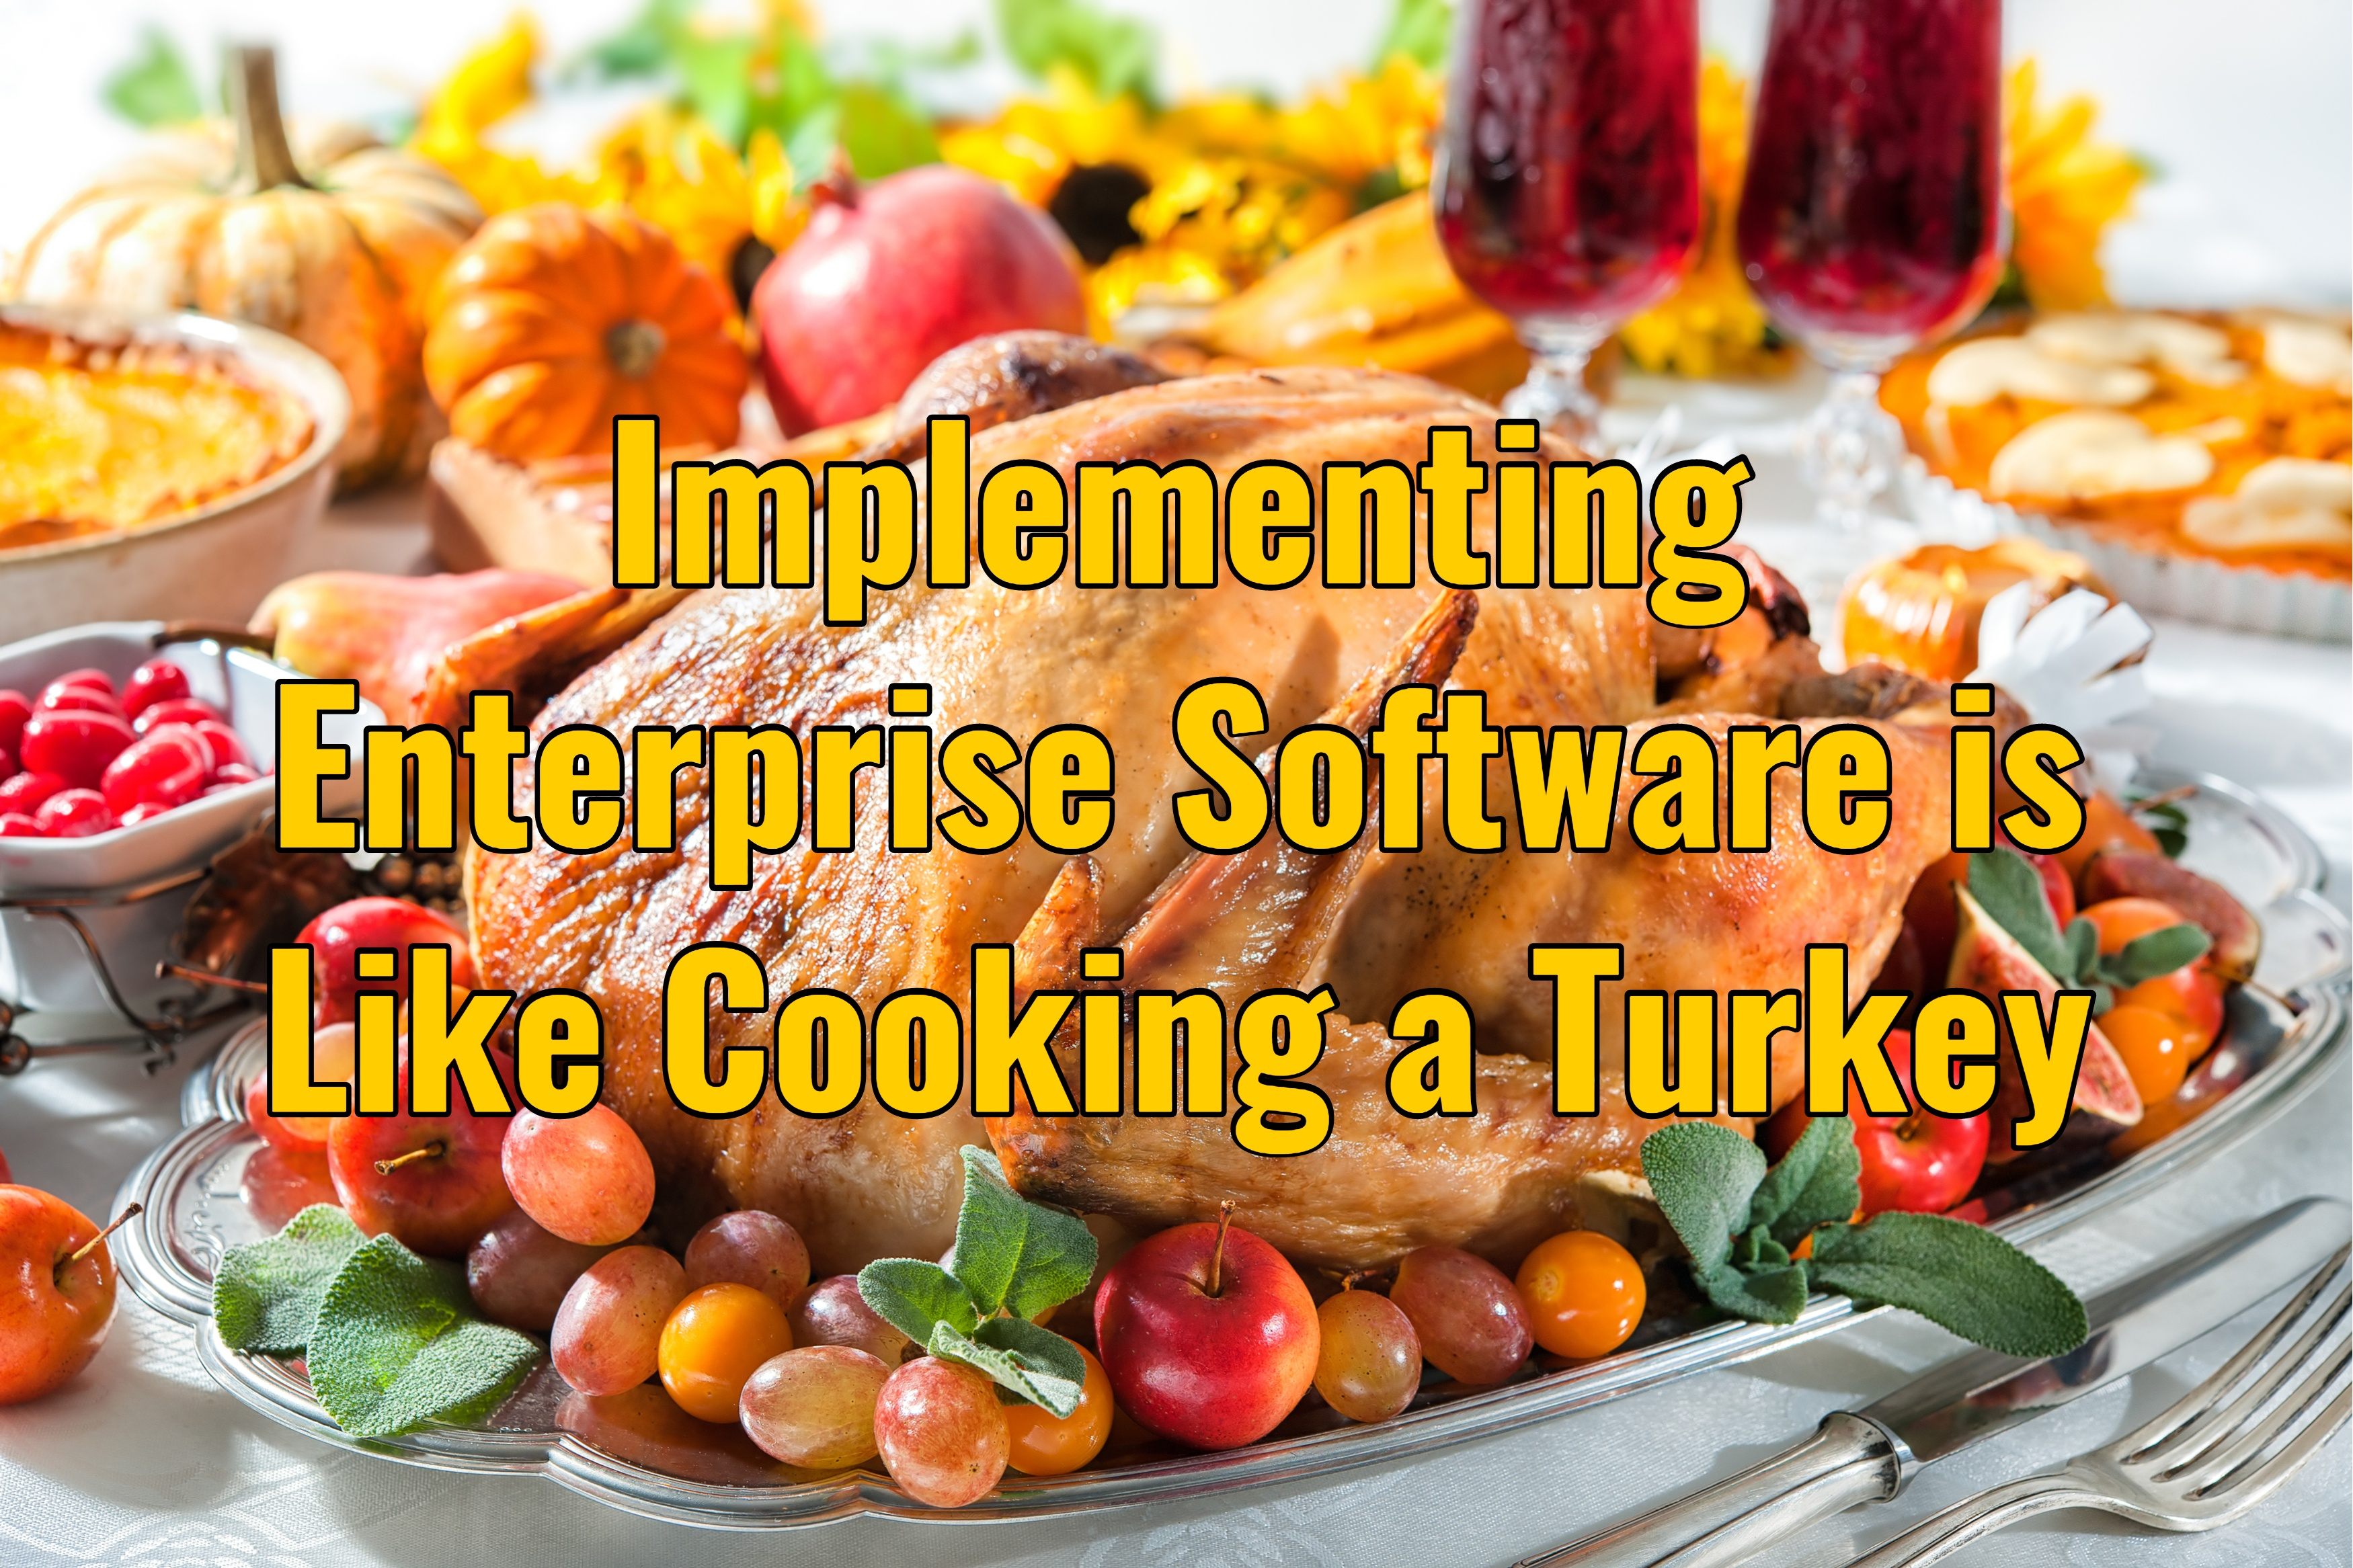 Implementing Enterprise Software is Like Cooking a Turkey